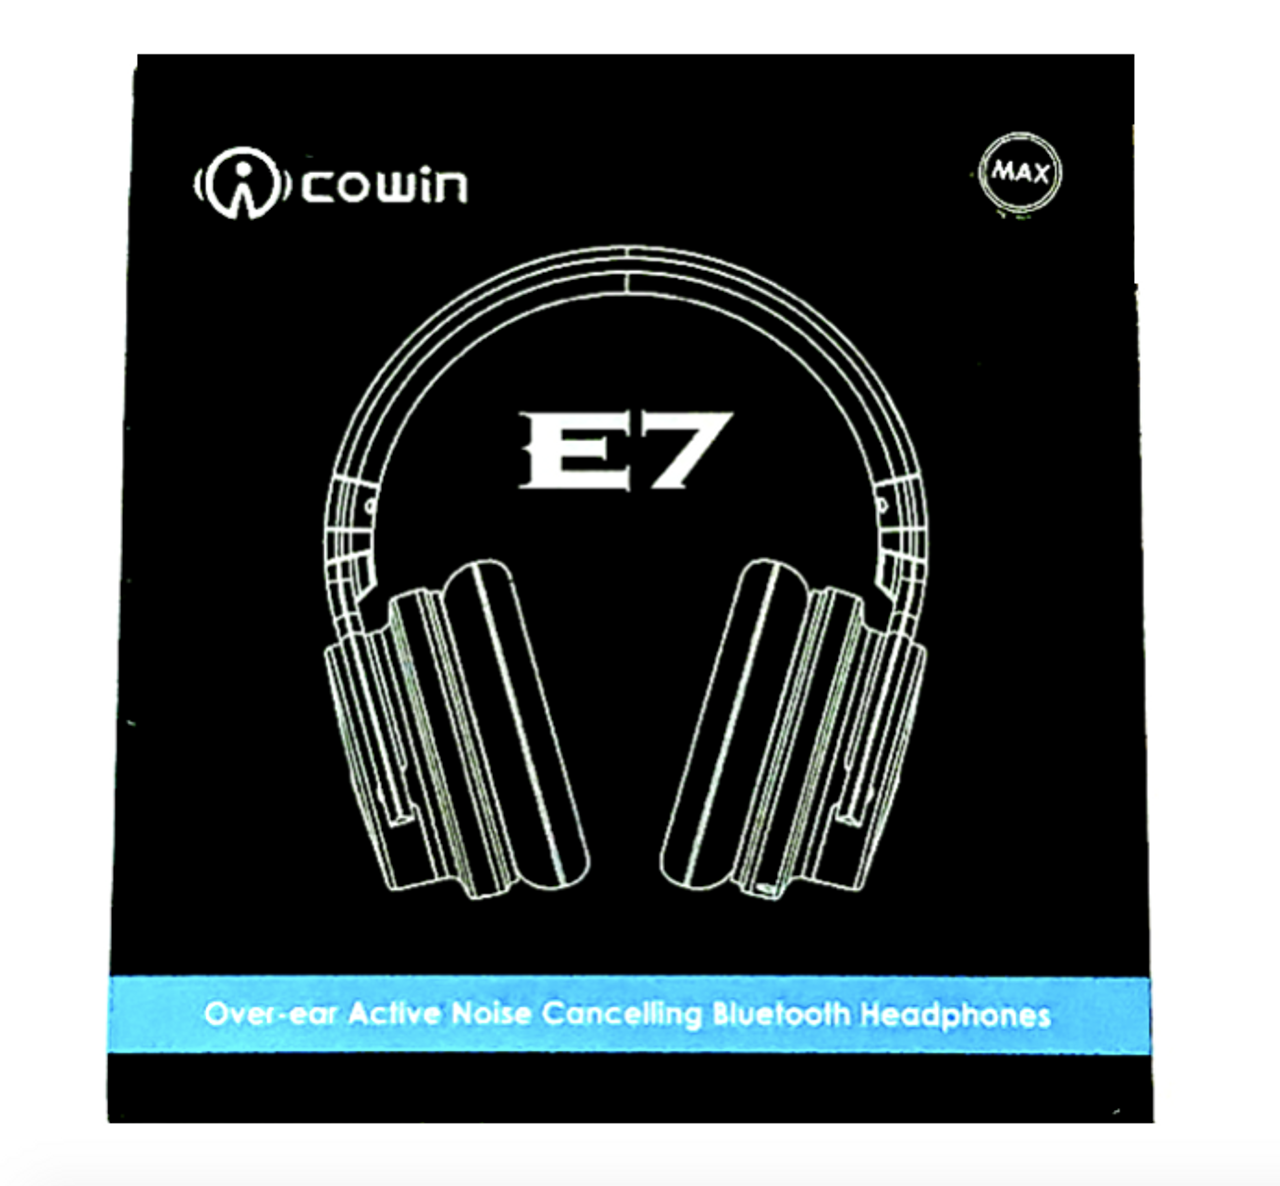 Cowin E7 MAX 2019 Active Noise Cancelling Wireless Bluetooth Headphones